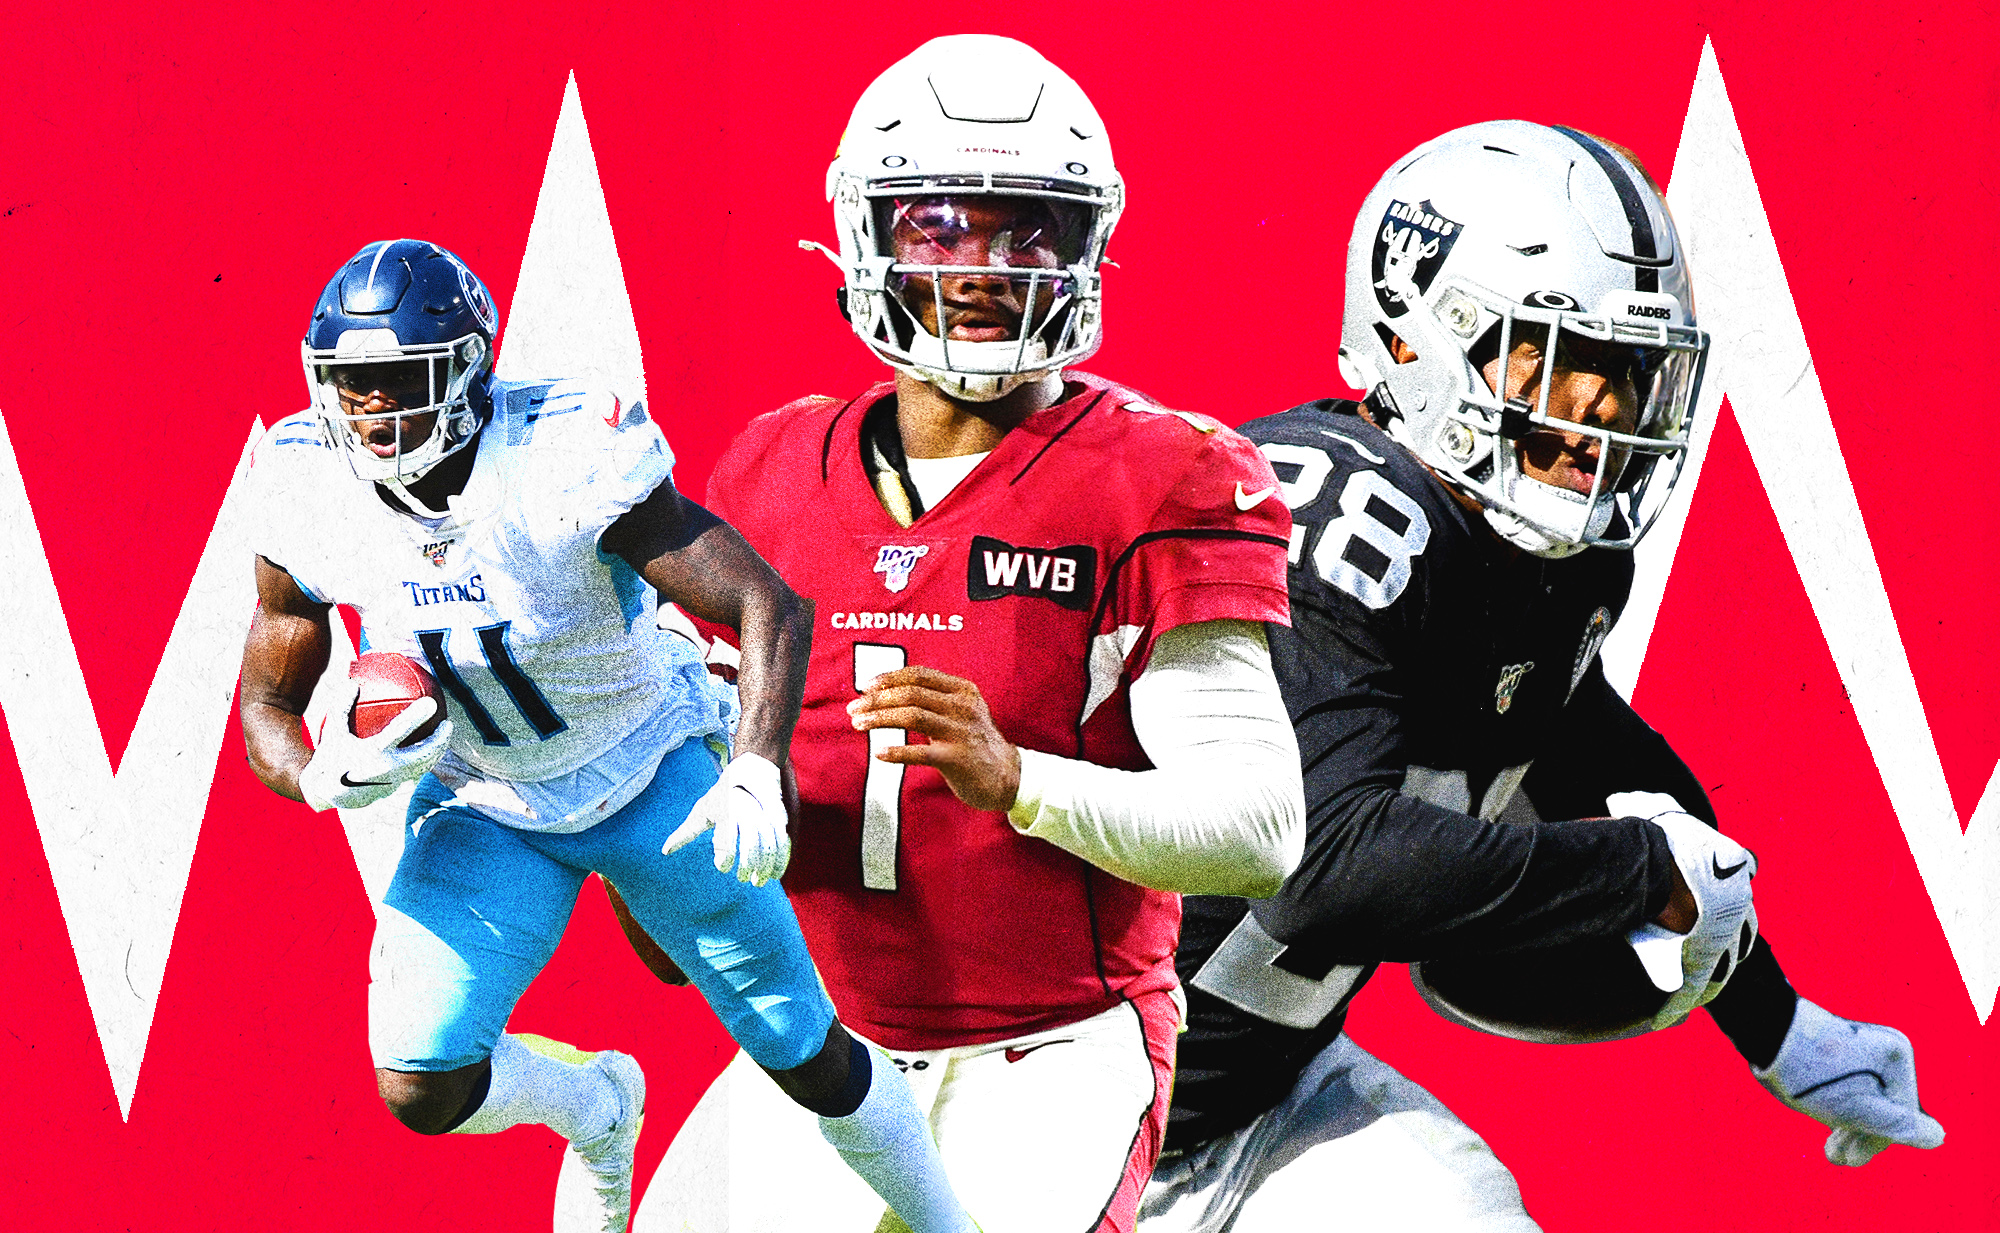 A collage of rookies AJ Brown (Titans WR), Kyler Murray (Cardinals QB), and Josh Jacobs (Raiders RB)